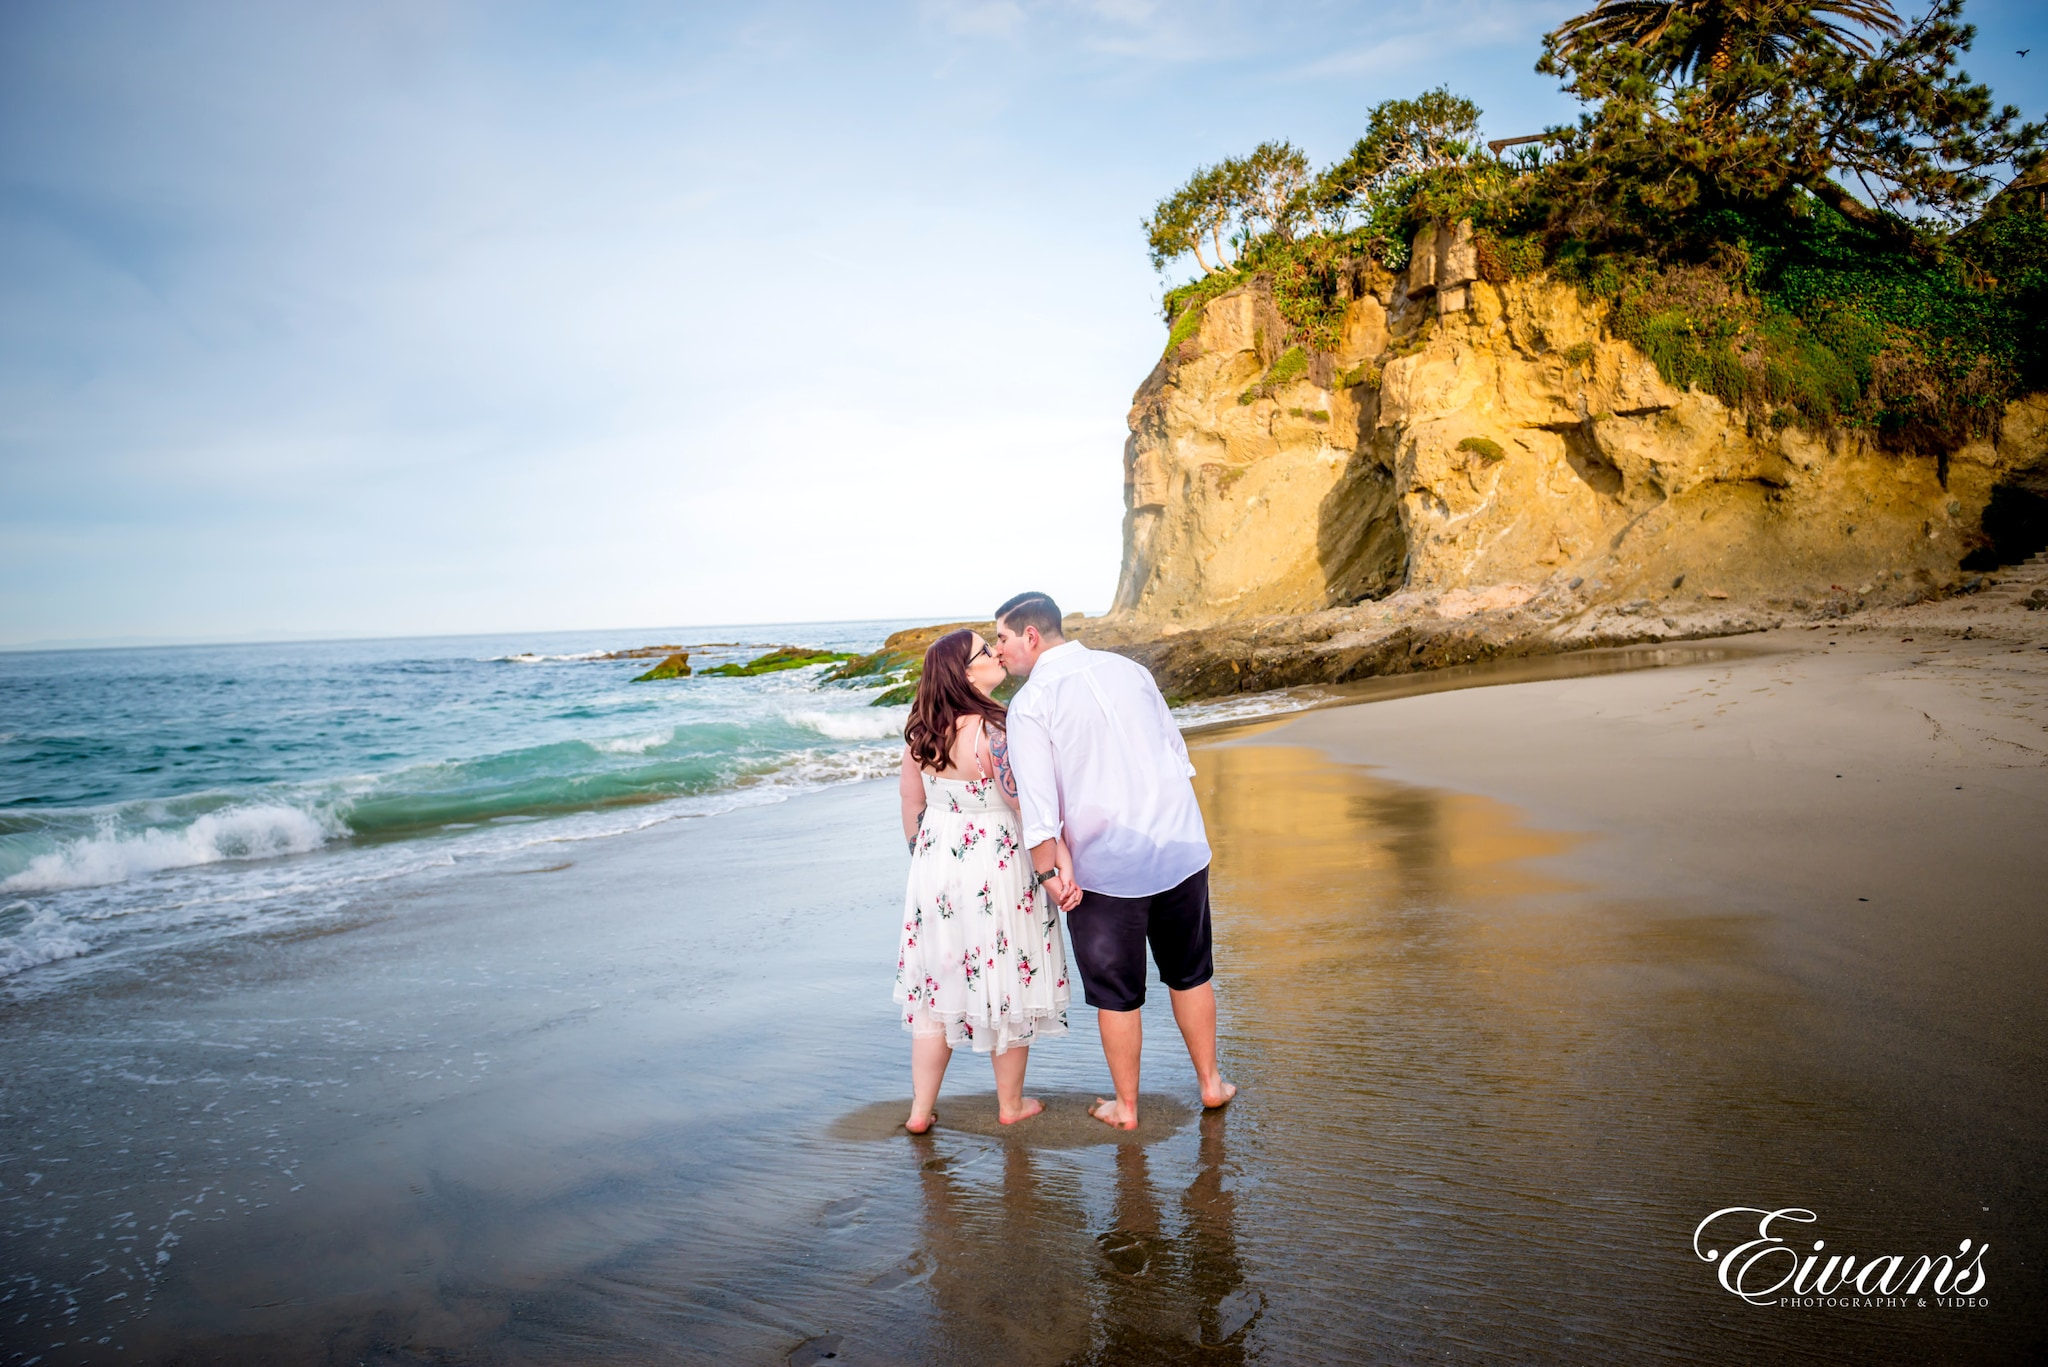 couple standing on beach during daytime